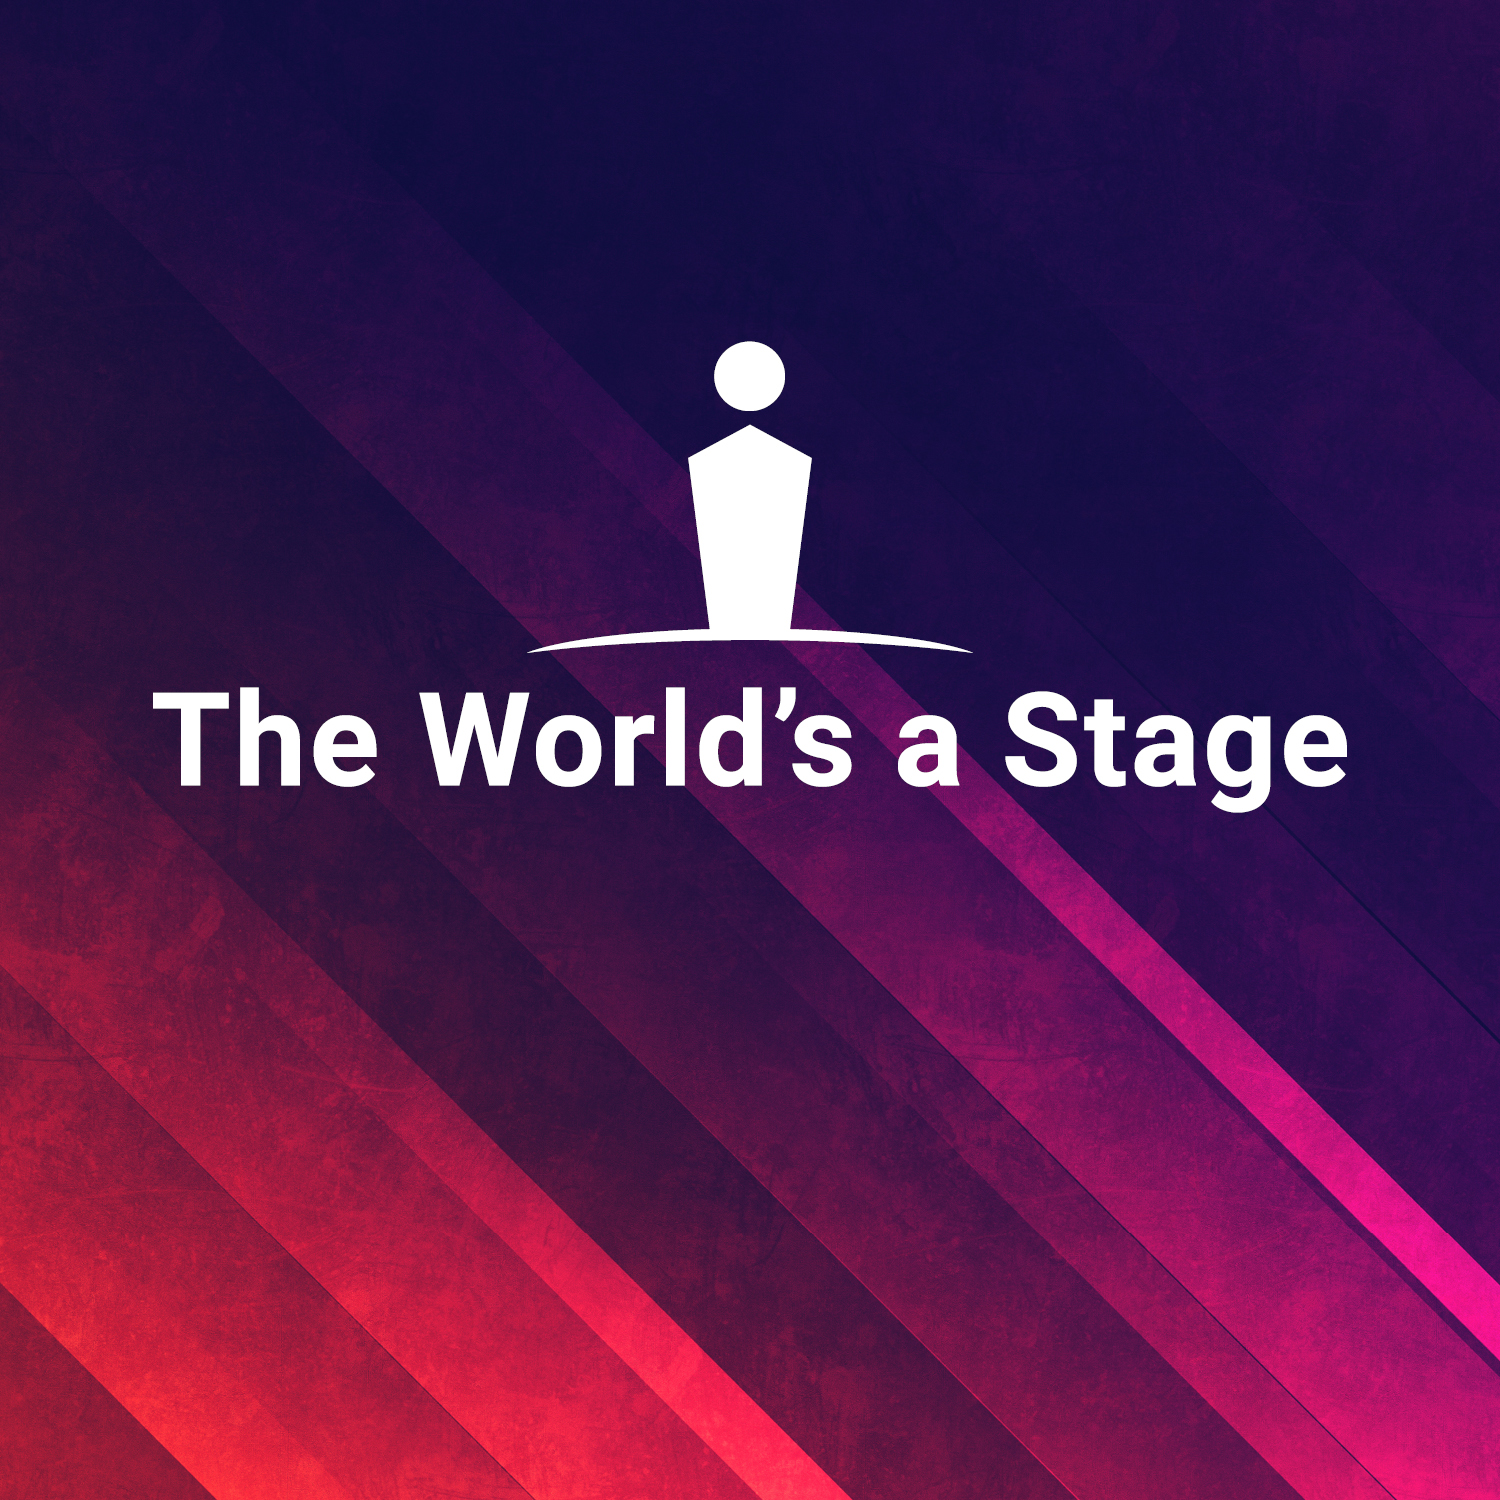 The World's a Stage series